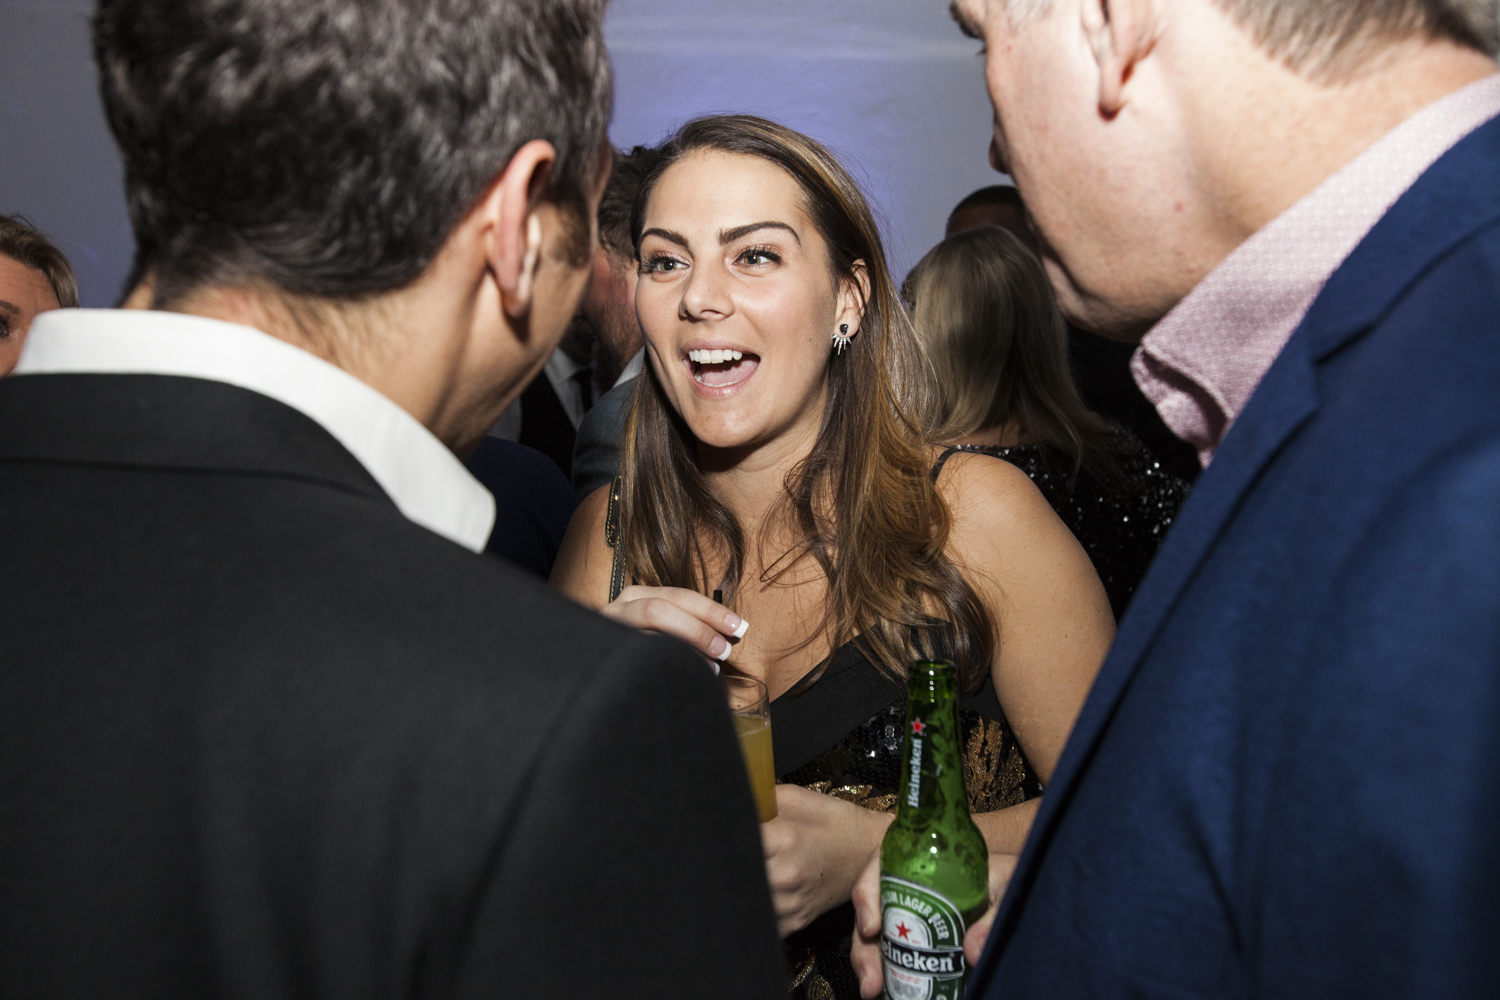 AdrianFisk-LondonCorporateParty-16.jpg